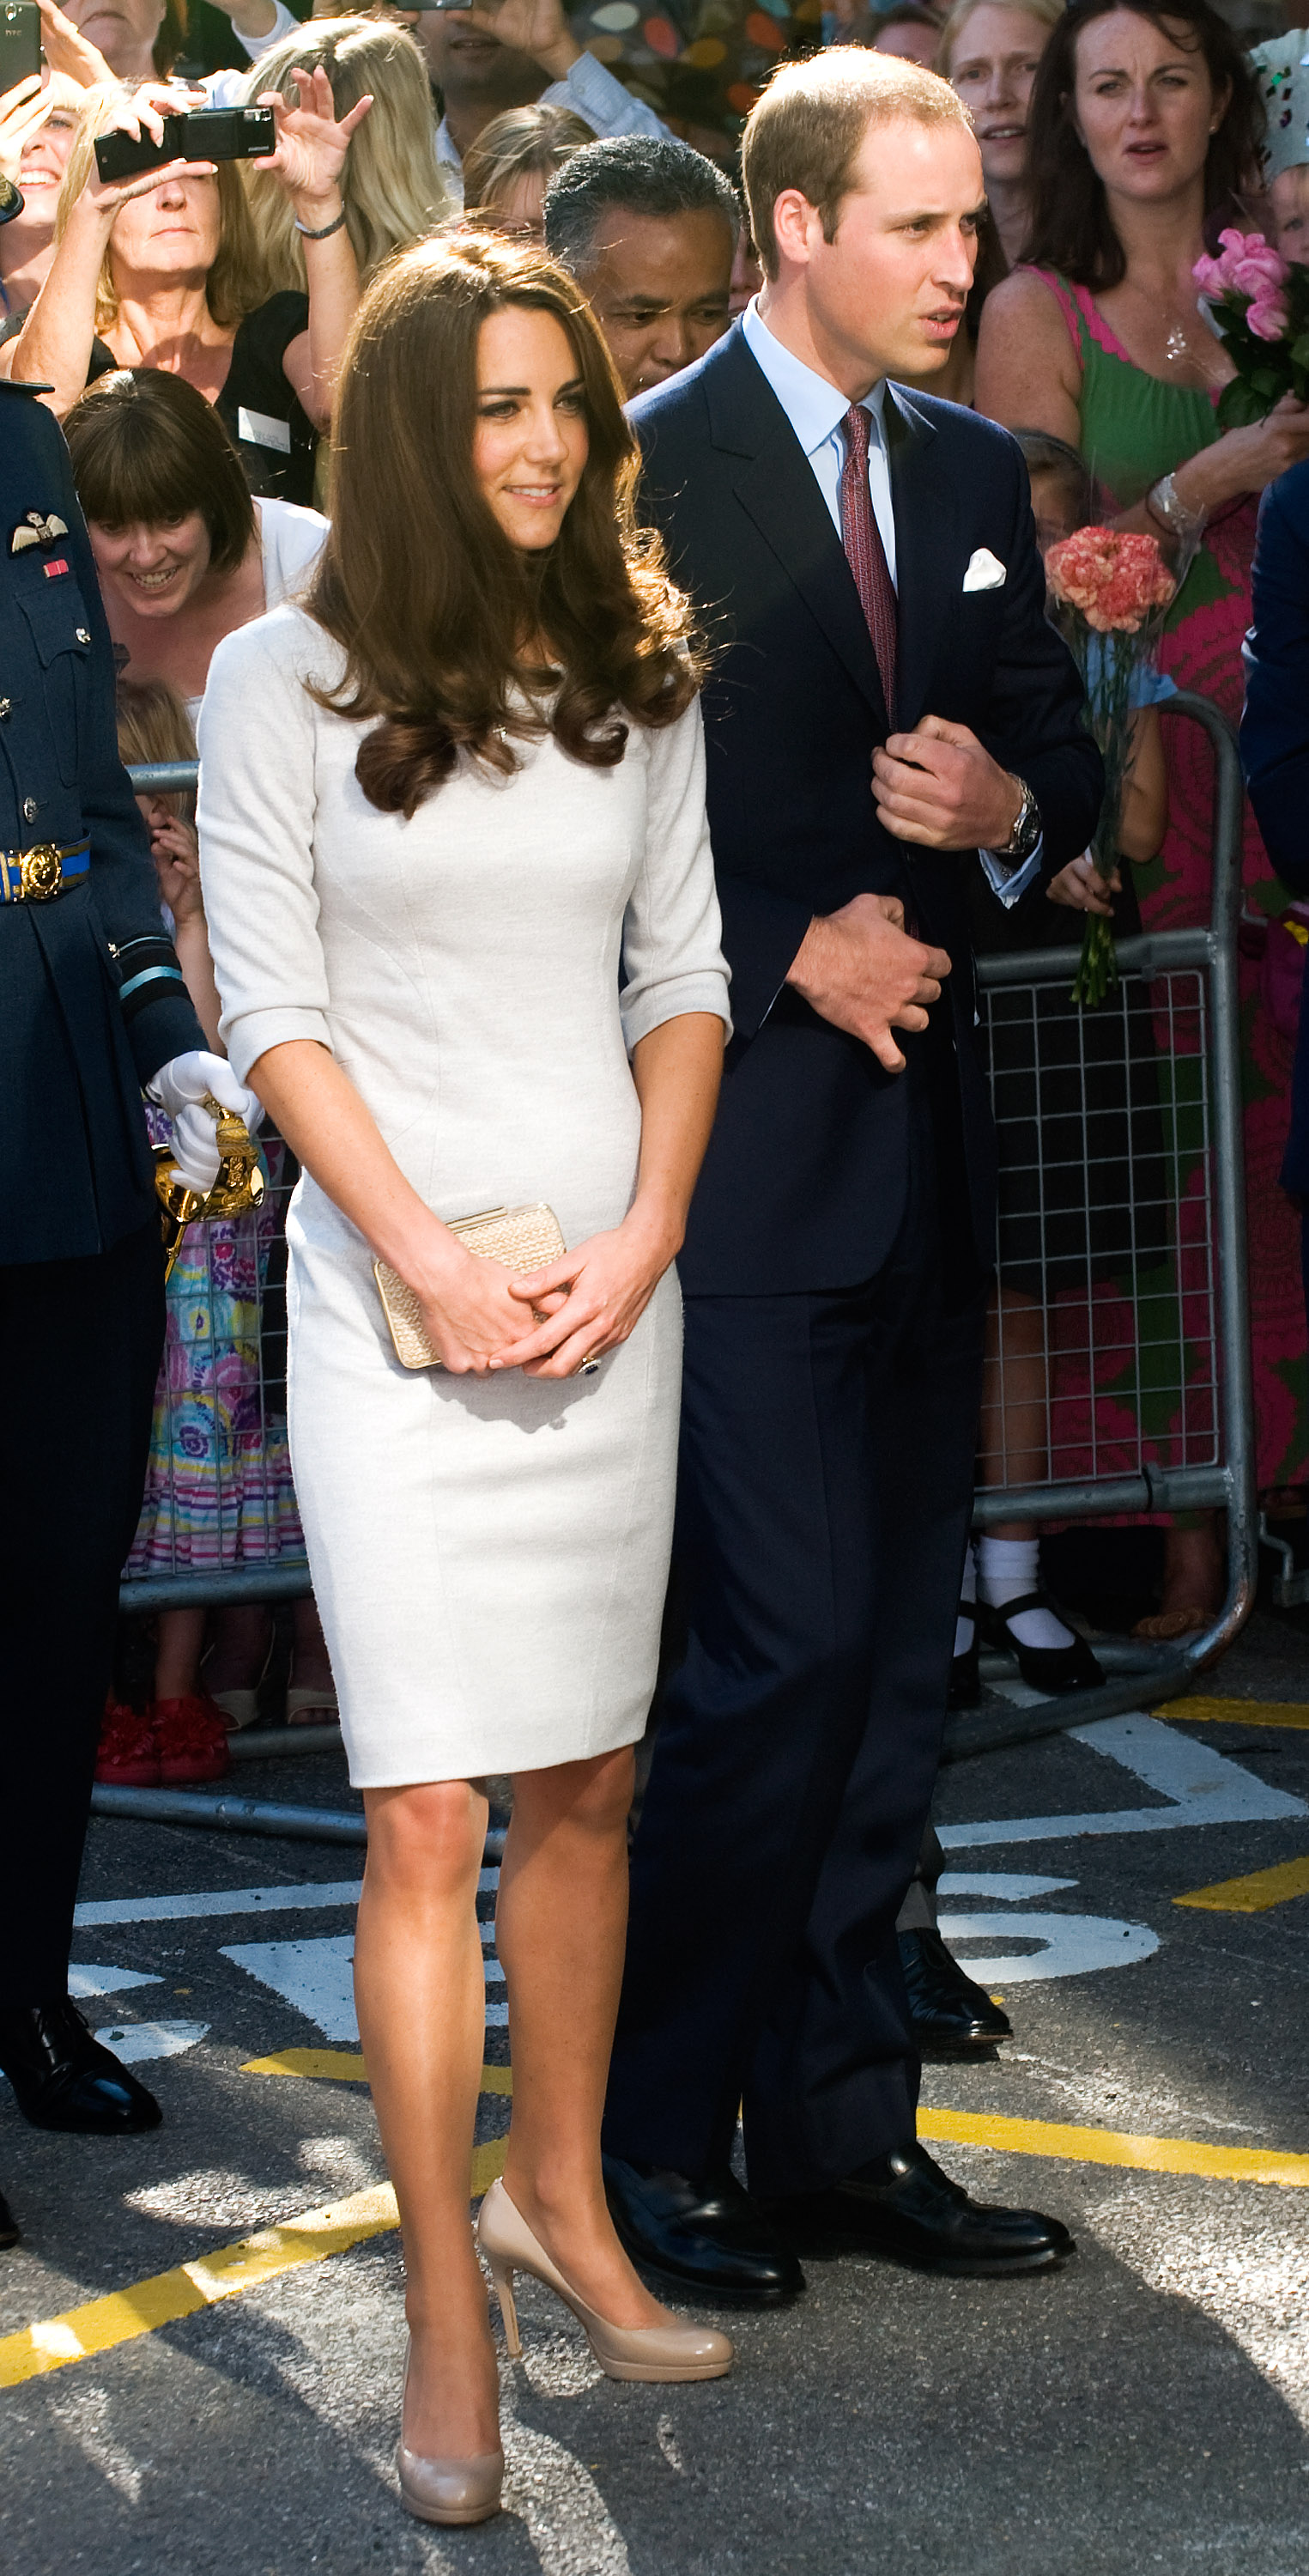 Prince William and Kate Middleton went to a hospital in London.